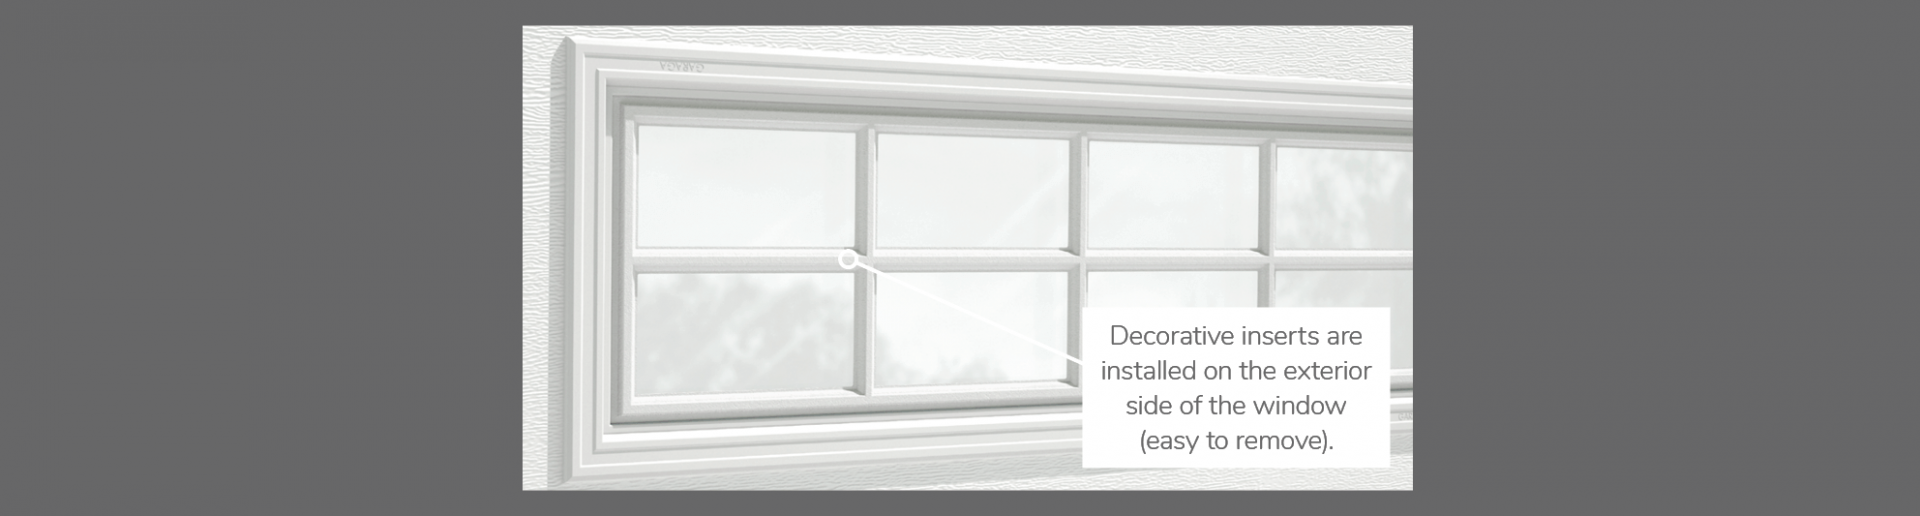 "Stockton Decorative Insert, 40"" x 13"" or 41"" x 16"", available for door 3 layers - Polystyrene, 2 layers - Polystyrene and Non-insulated"